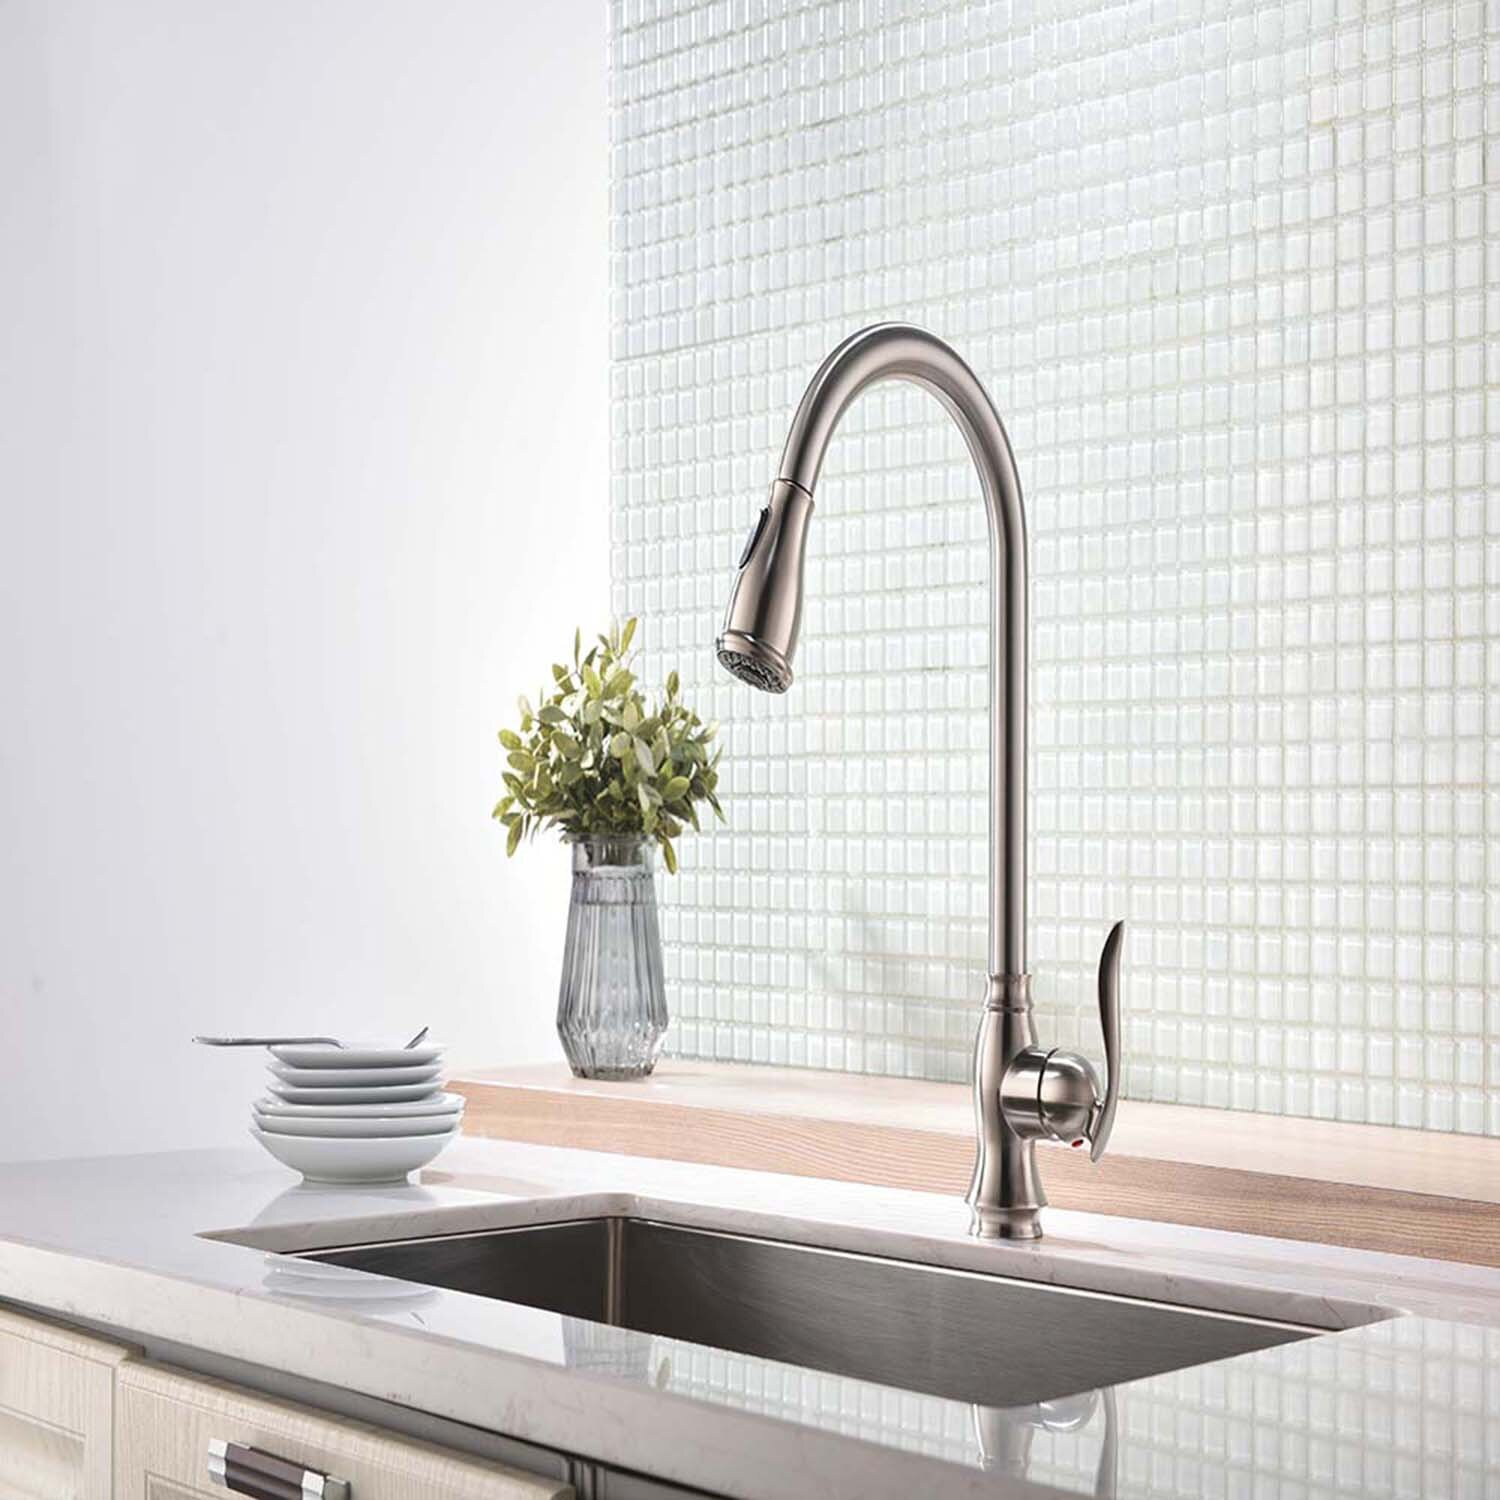 Ferro Decor Easy Install Single Handle No Sensor Pull Down Sprayer Kitchen Faucet With Flexible Hose In Brushed Nickel Wayfair